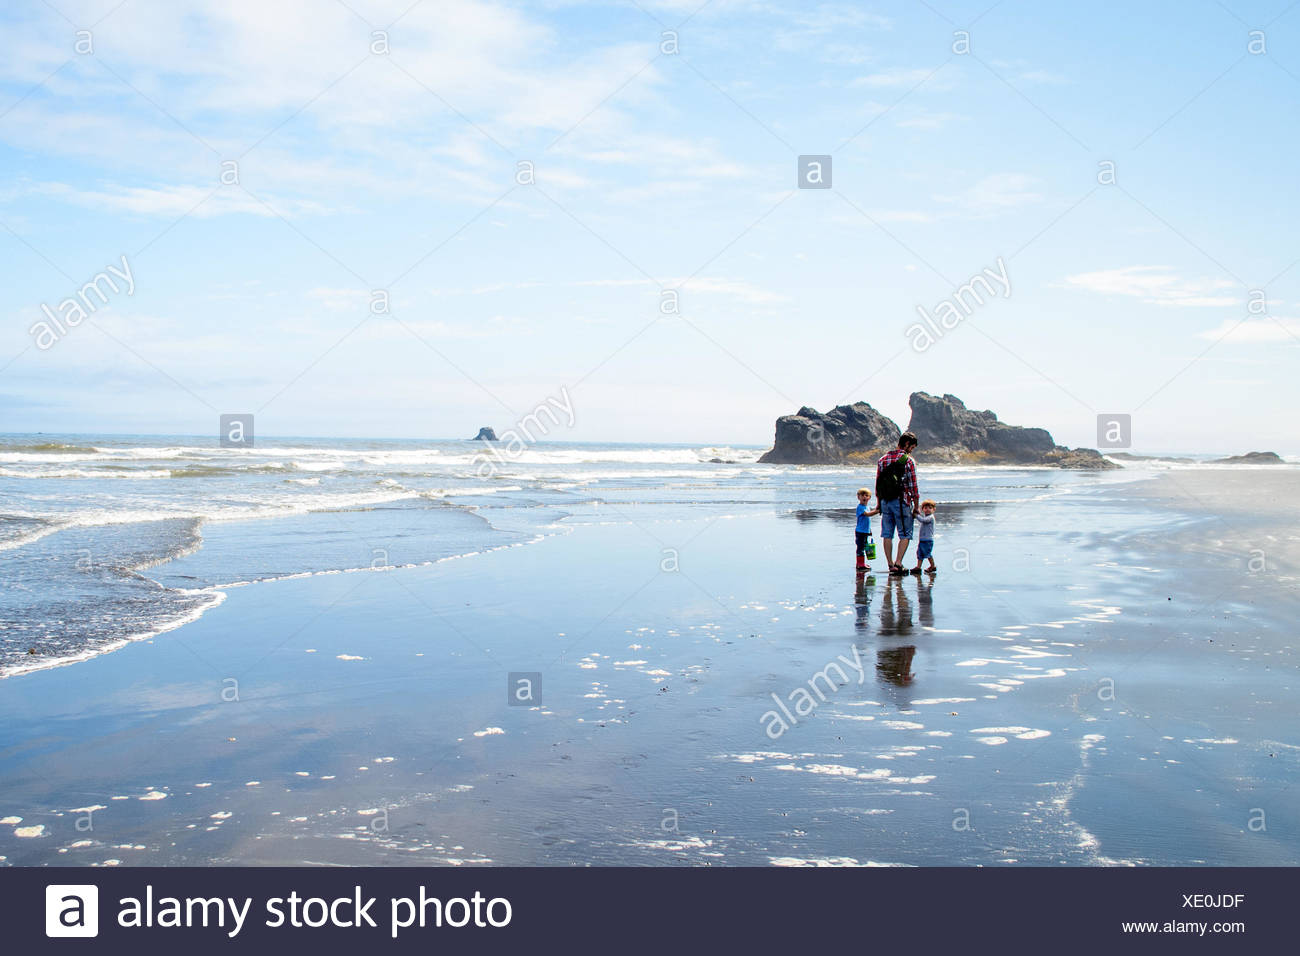 Mother with two children( 2-3, 4-5) standing at beach - Stock Image